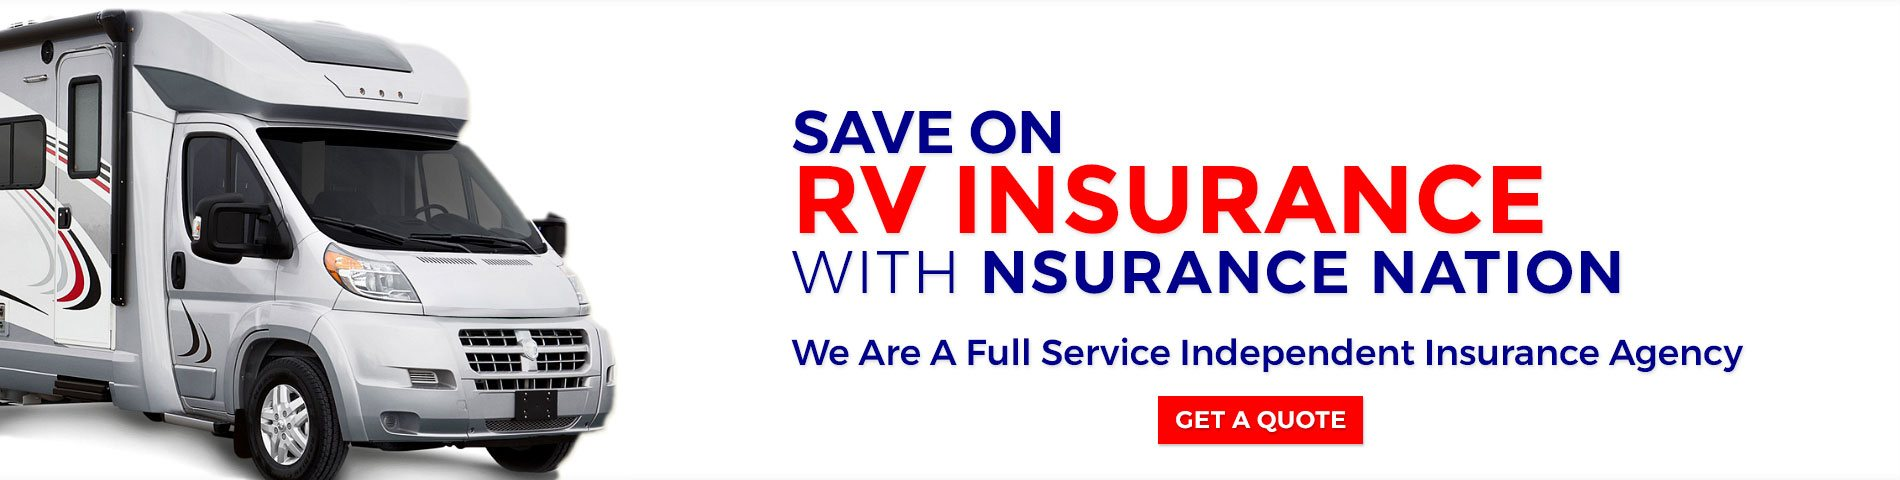 RV Motorhome Insurance Quotes